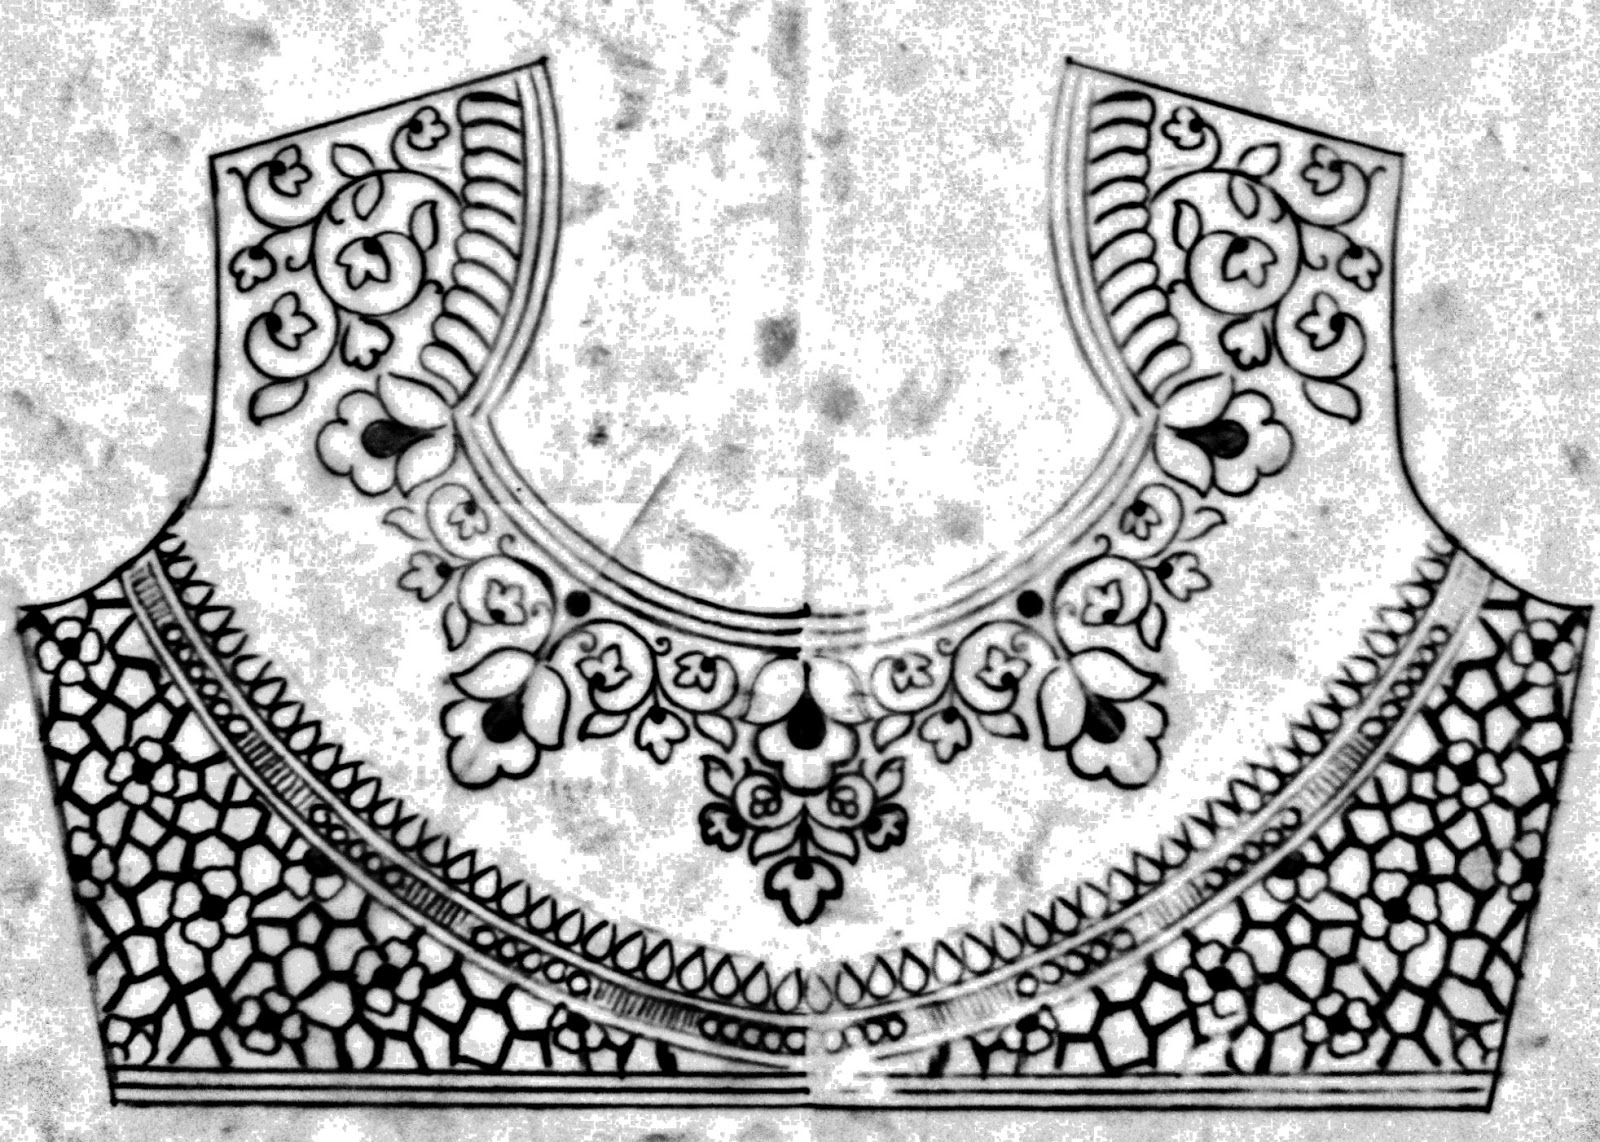 Simple saree blouse designs/free download emroidery pic of blouse design/How to draw blouse embroidery design